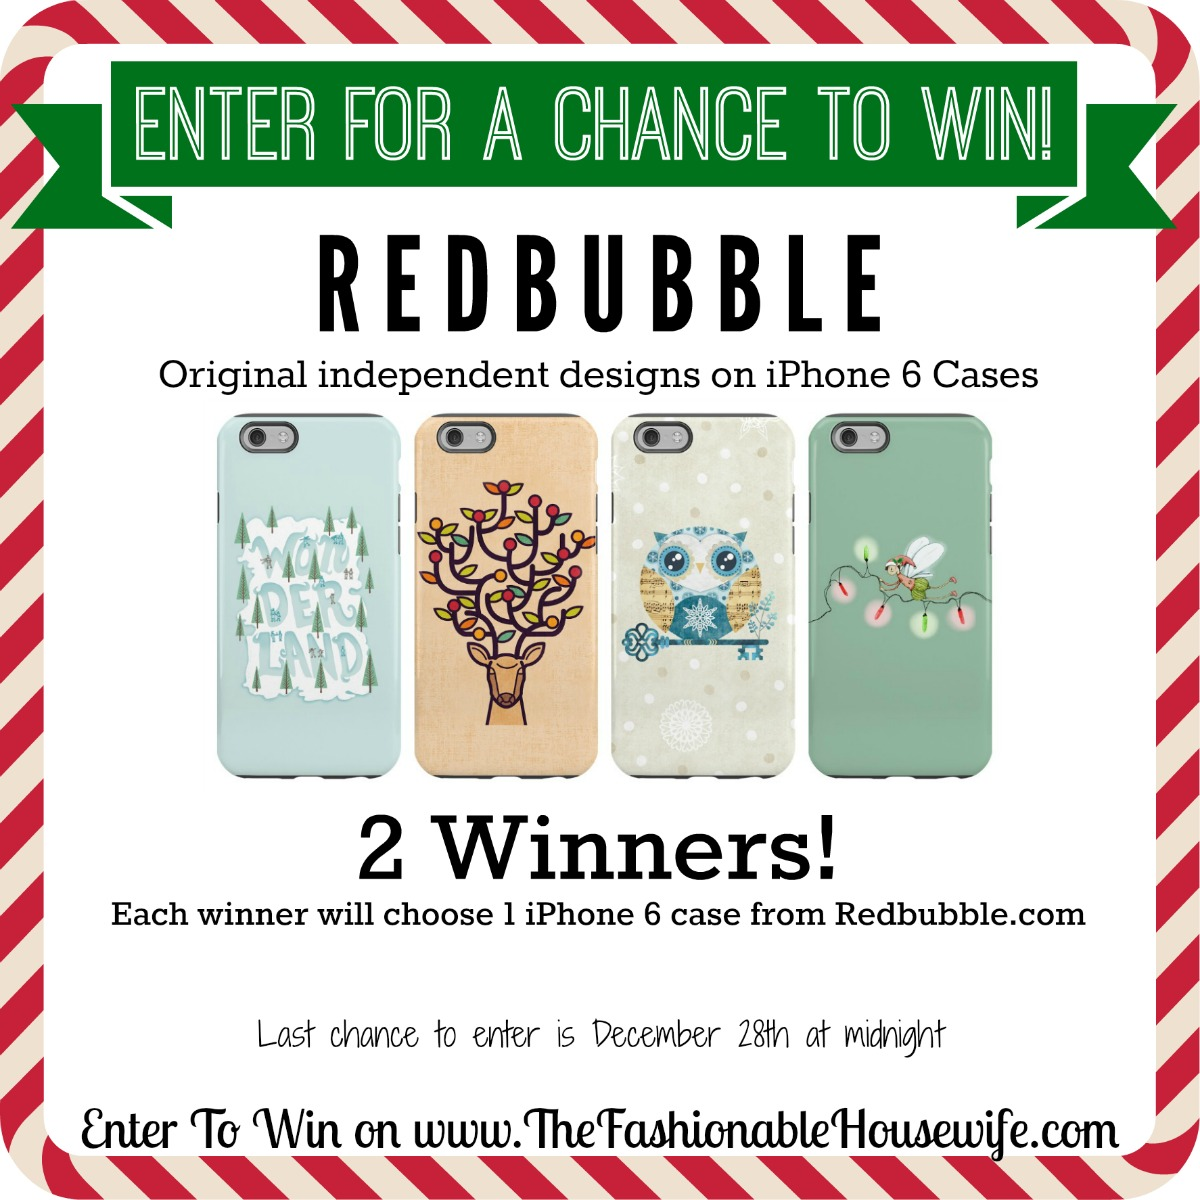 Enter for a chance to win iPhone 6 case from Redbubble